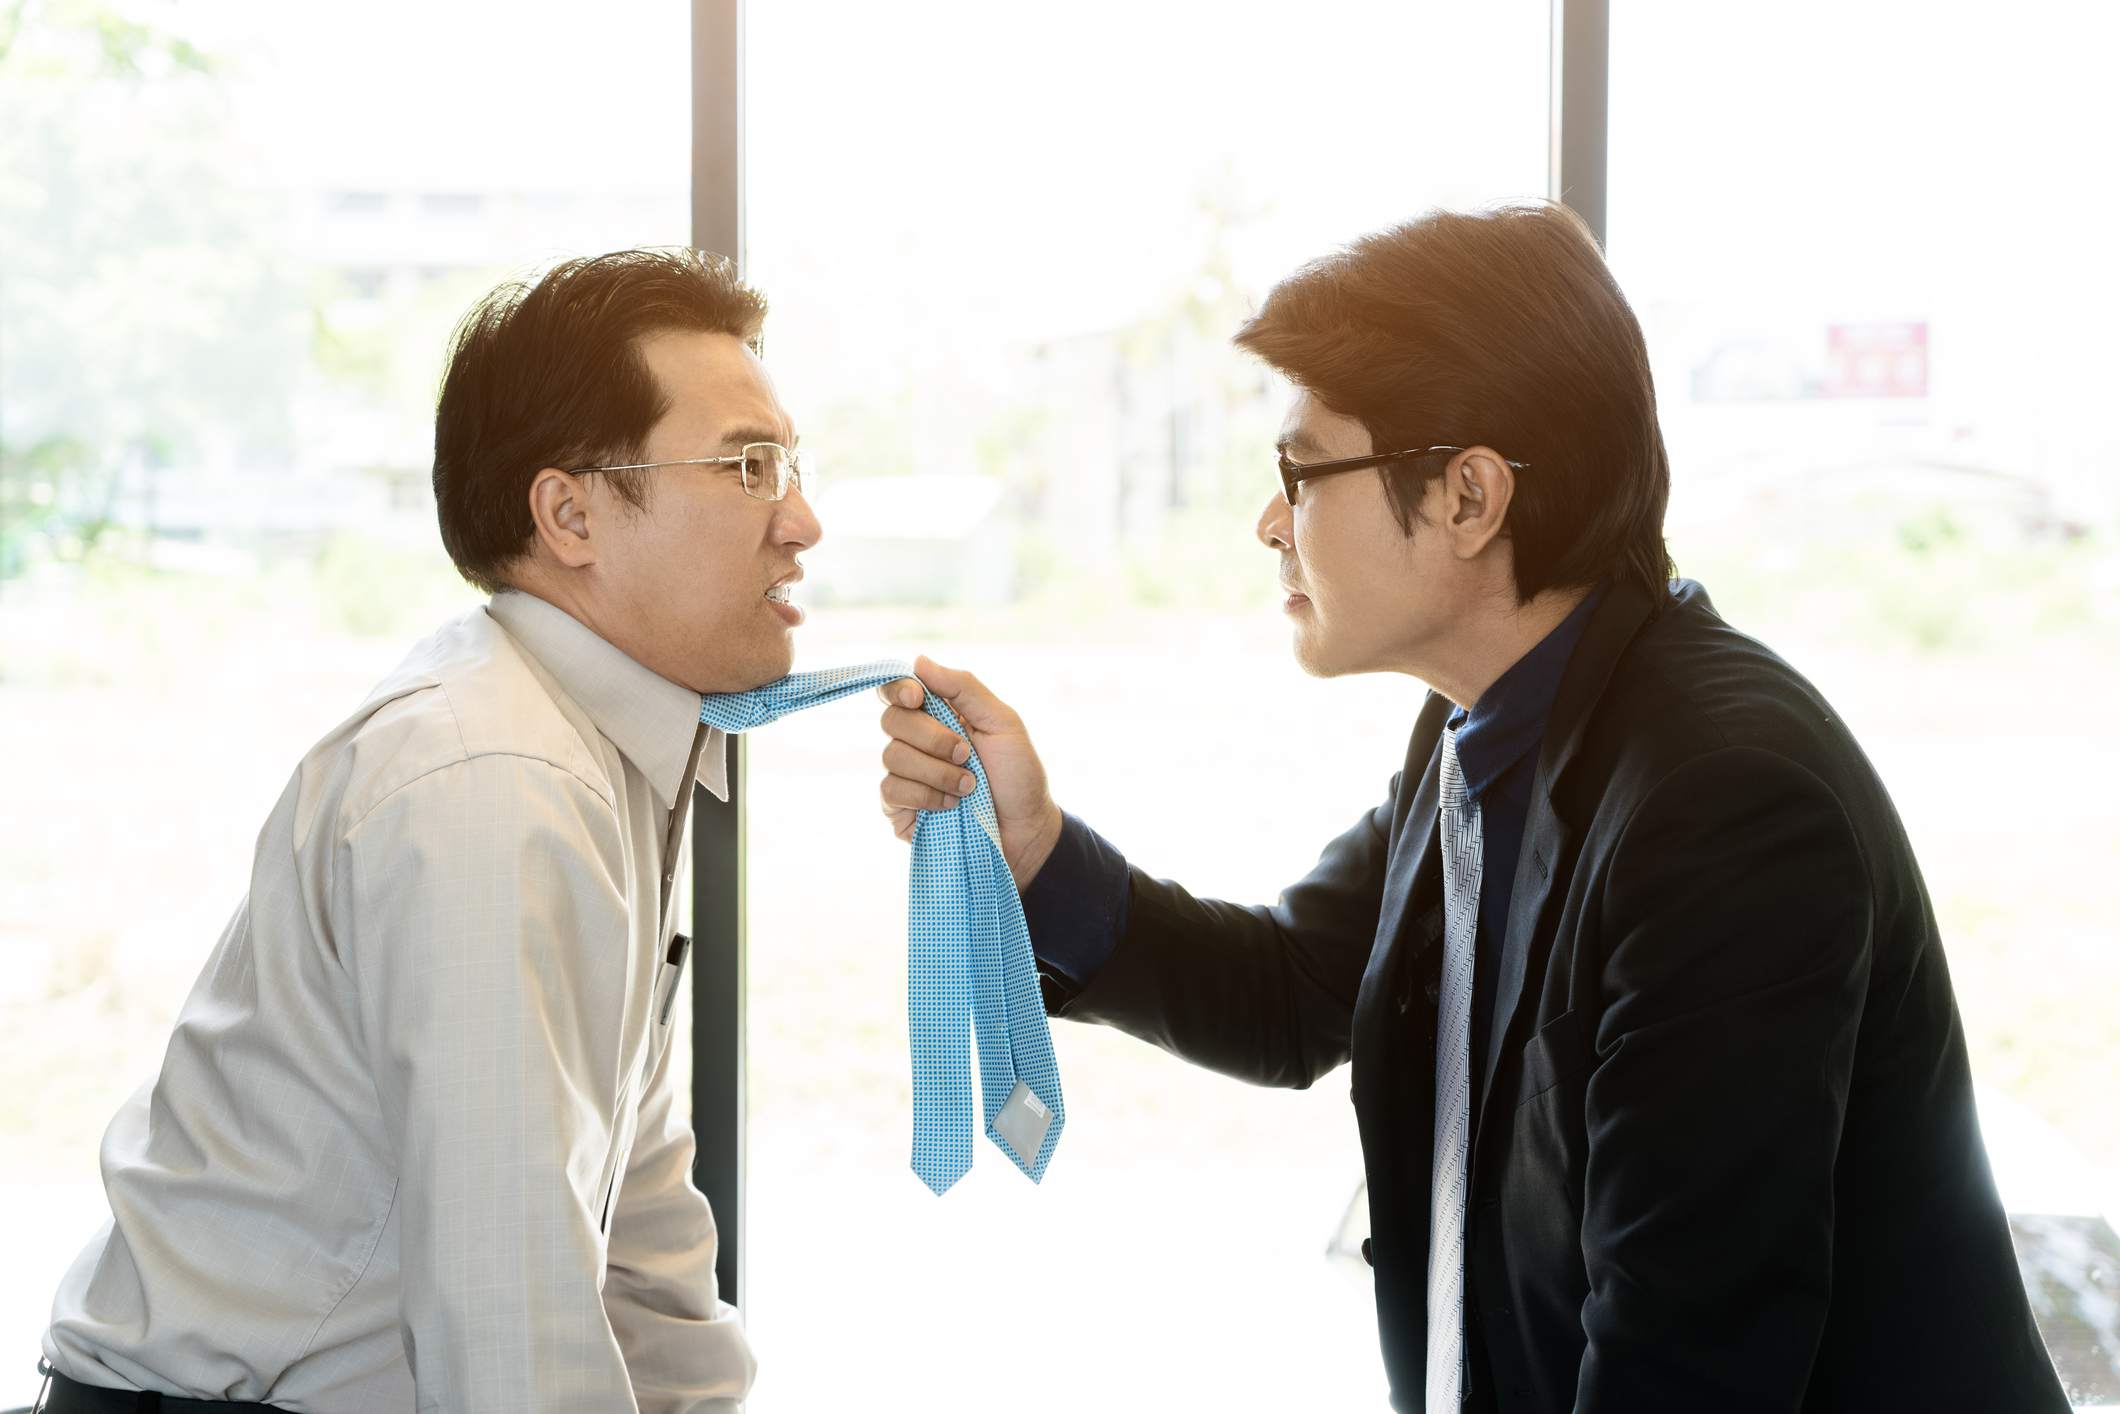 Angry man holding his coworker by the tie.